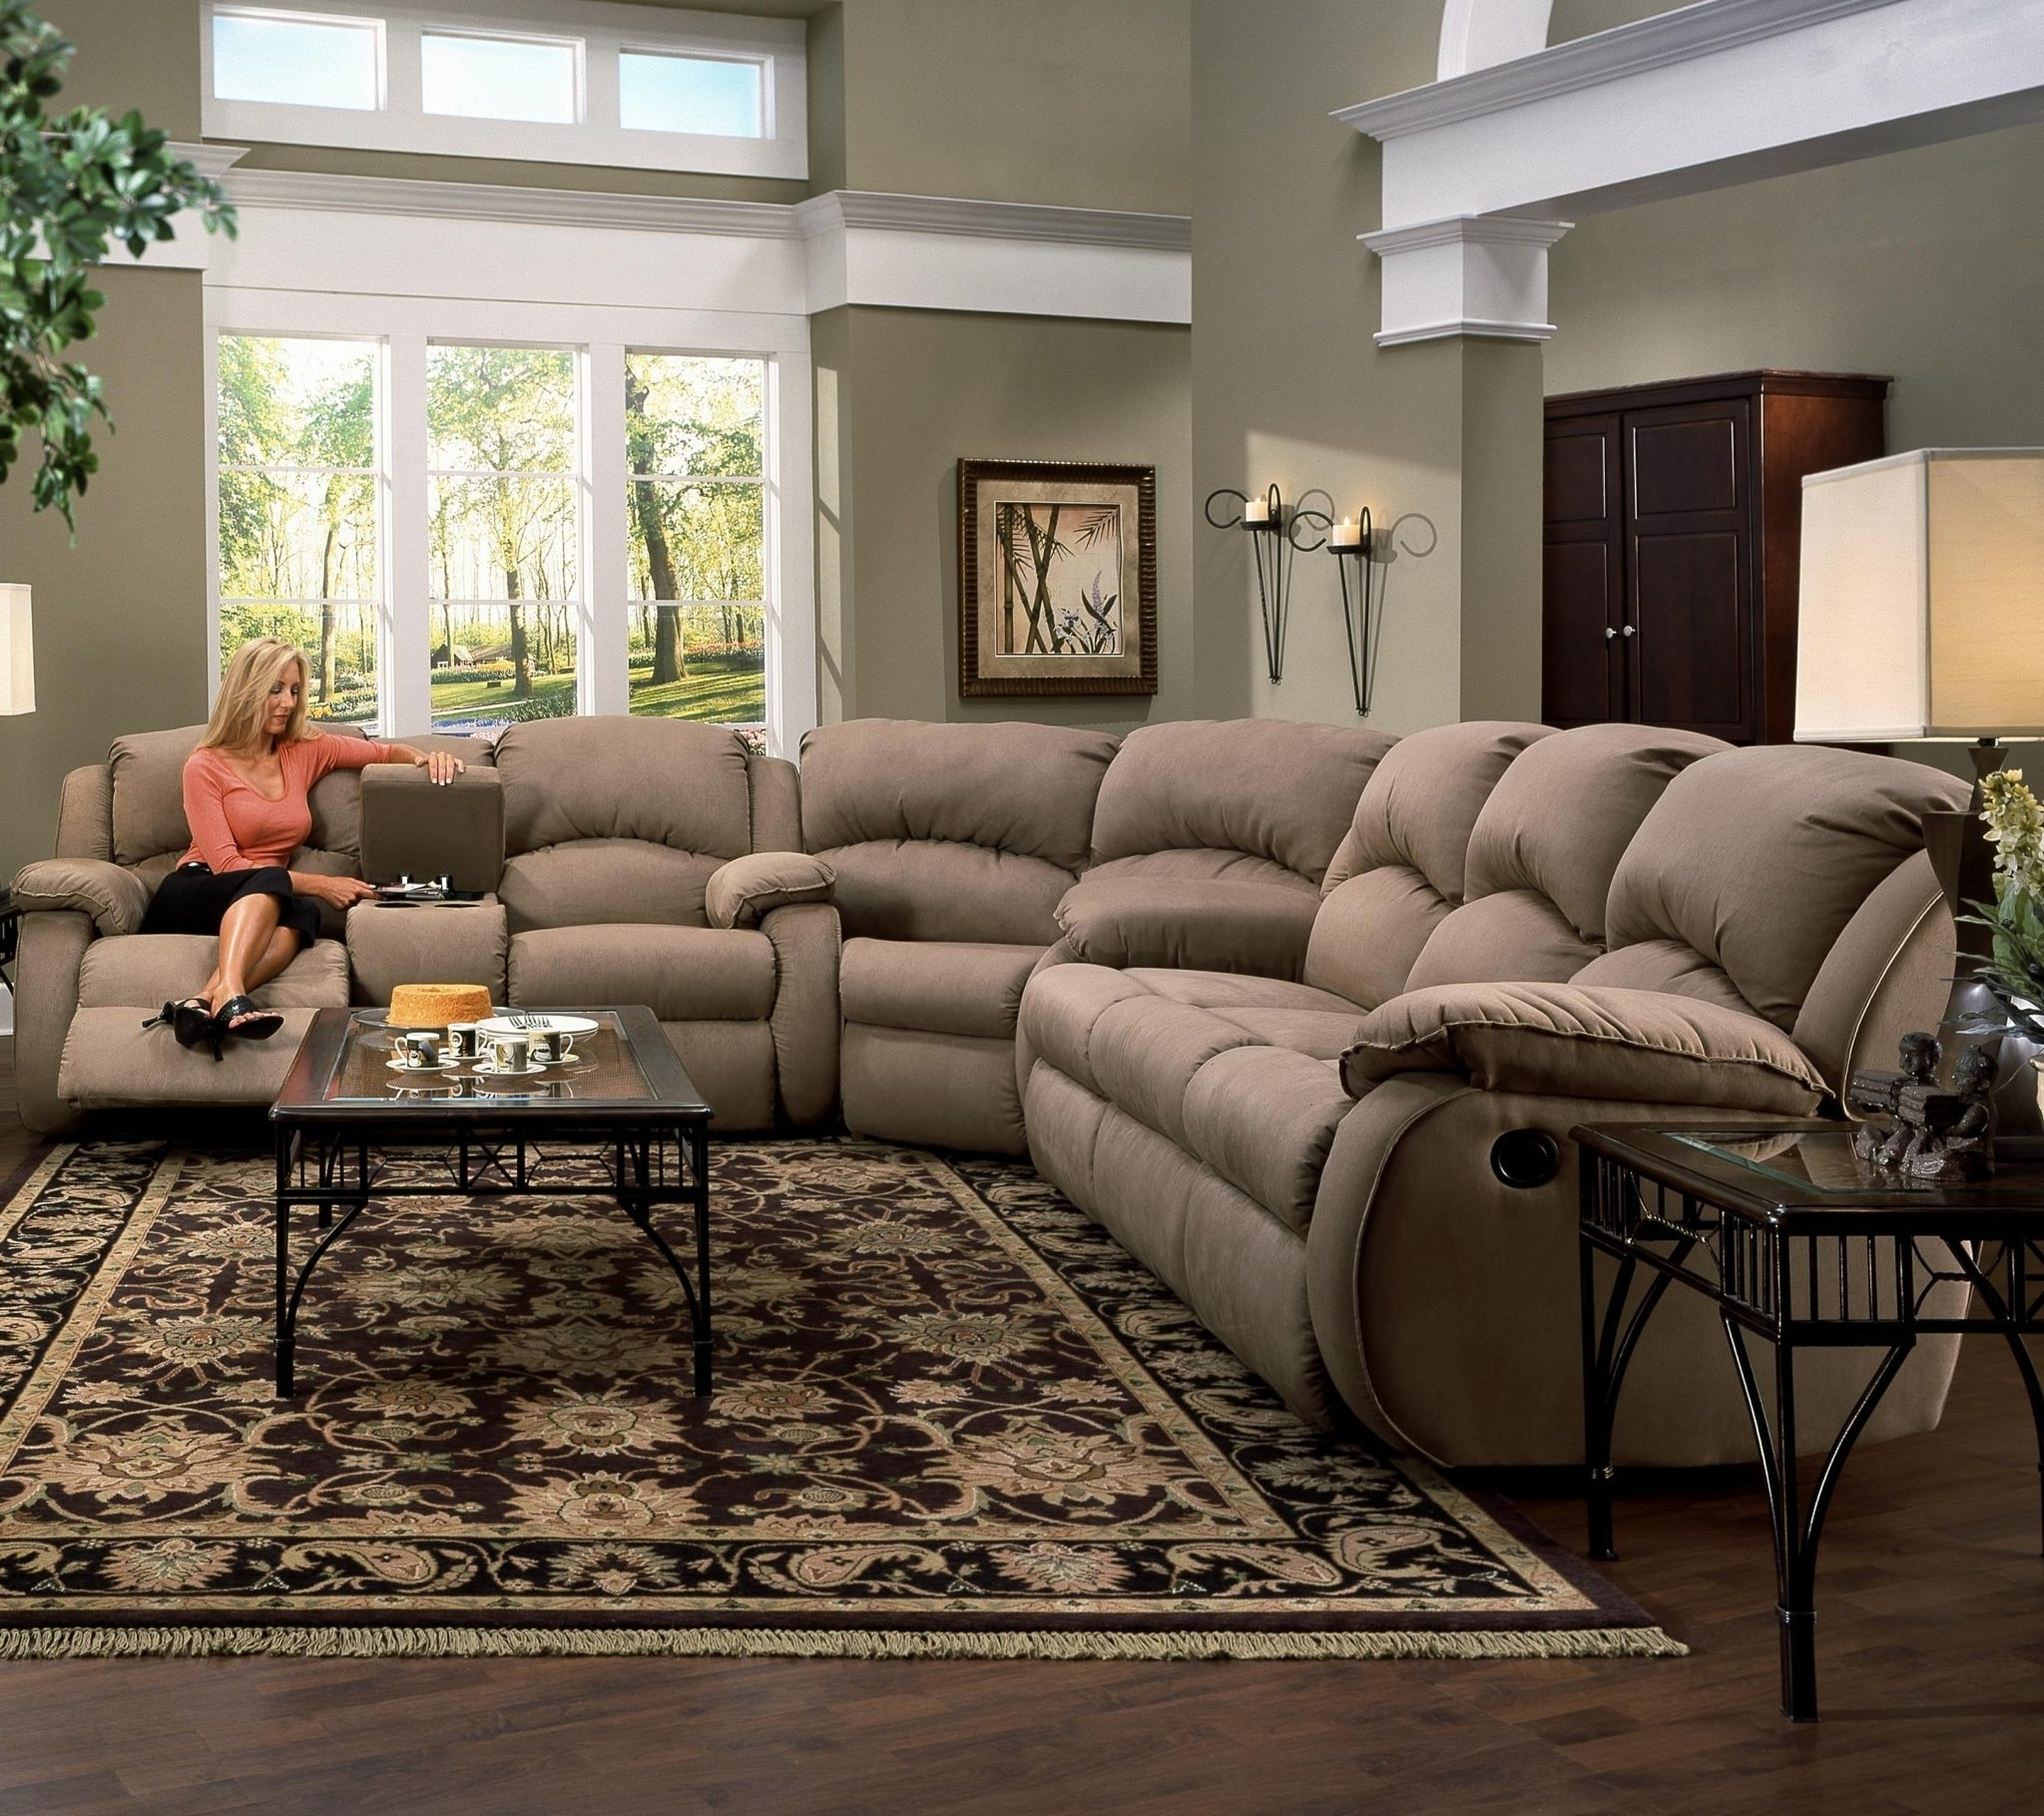 Recliners Chairs & Sofa : Sofa Sectional Recliner With L Shaped In Recent Motion Sectional Sofas (View 13 of 15)